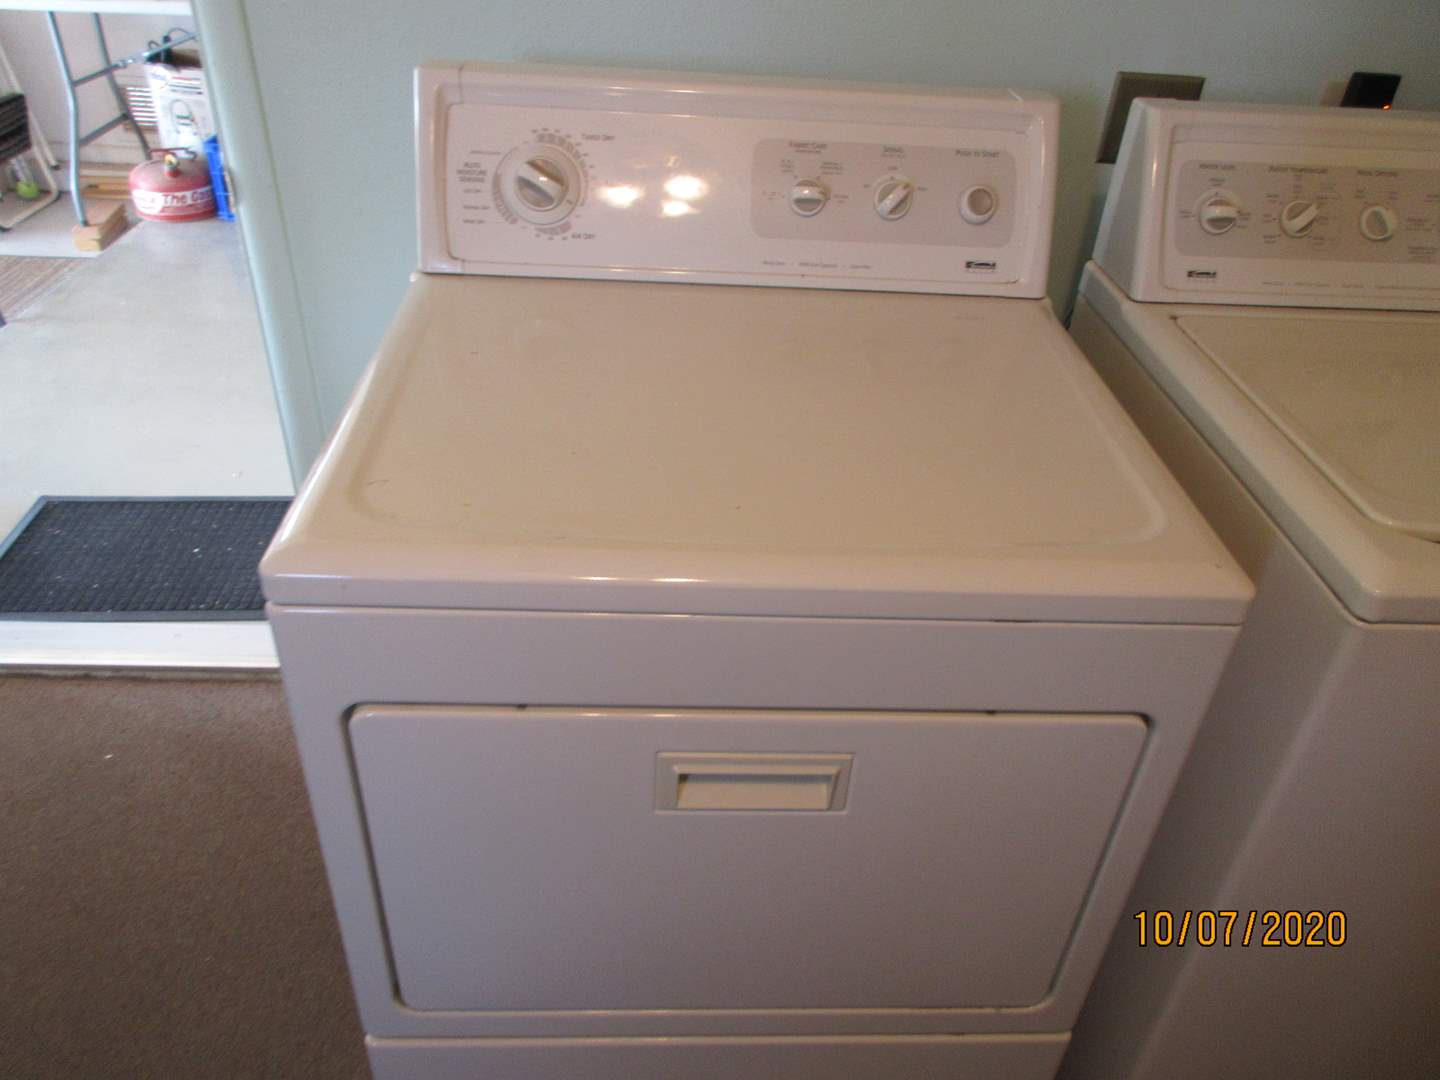 Lot # 120 - Kenmore Electric Dryer #63834100 (Working) (main image)